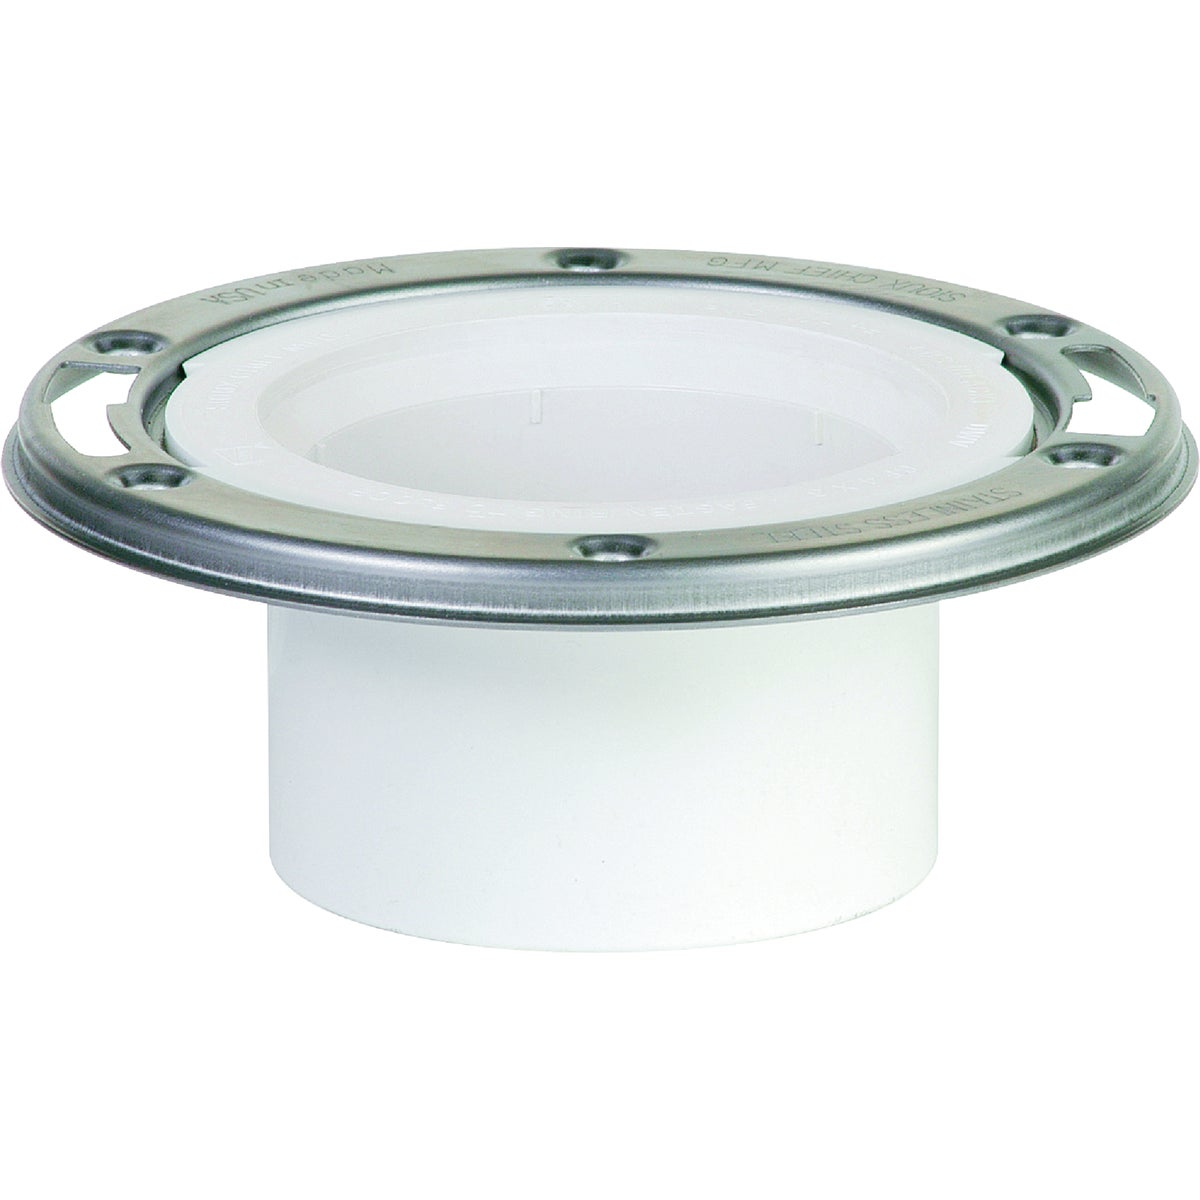 "4""SPG SS PVC CLST FLANGE - 886-4PMSPK by Sioux Chief Mfg"